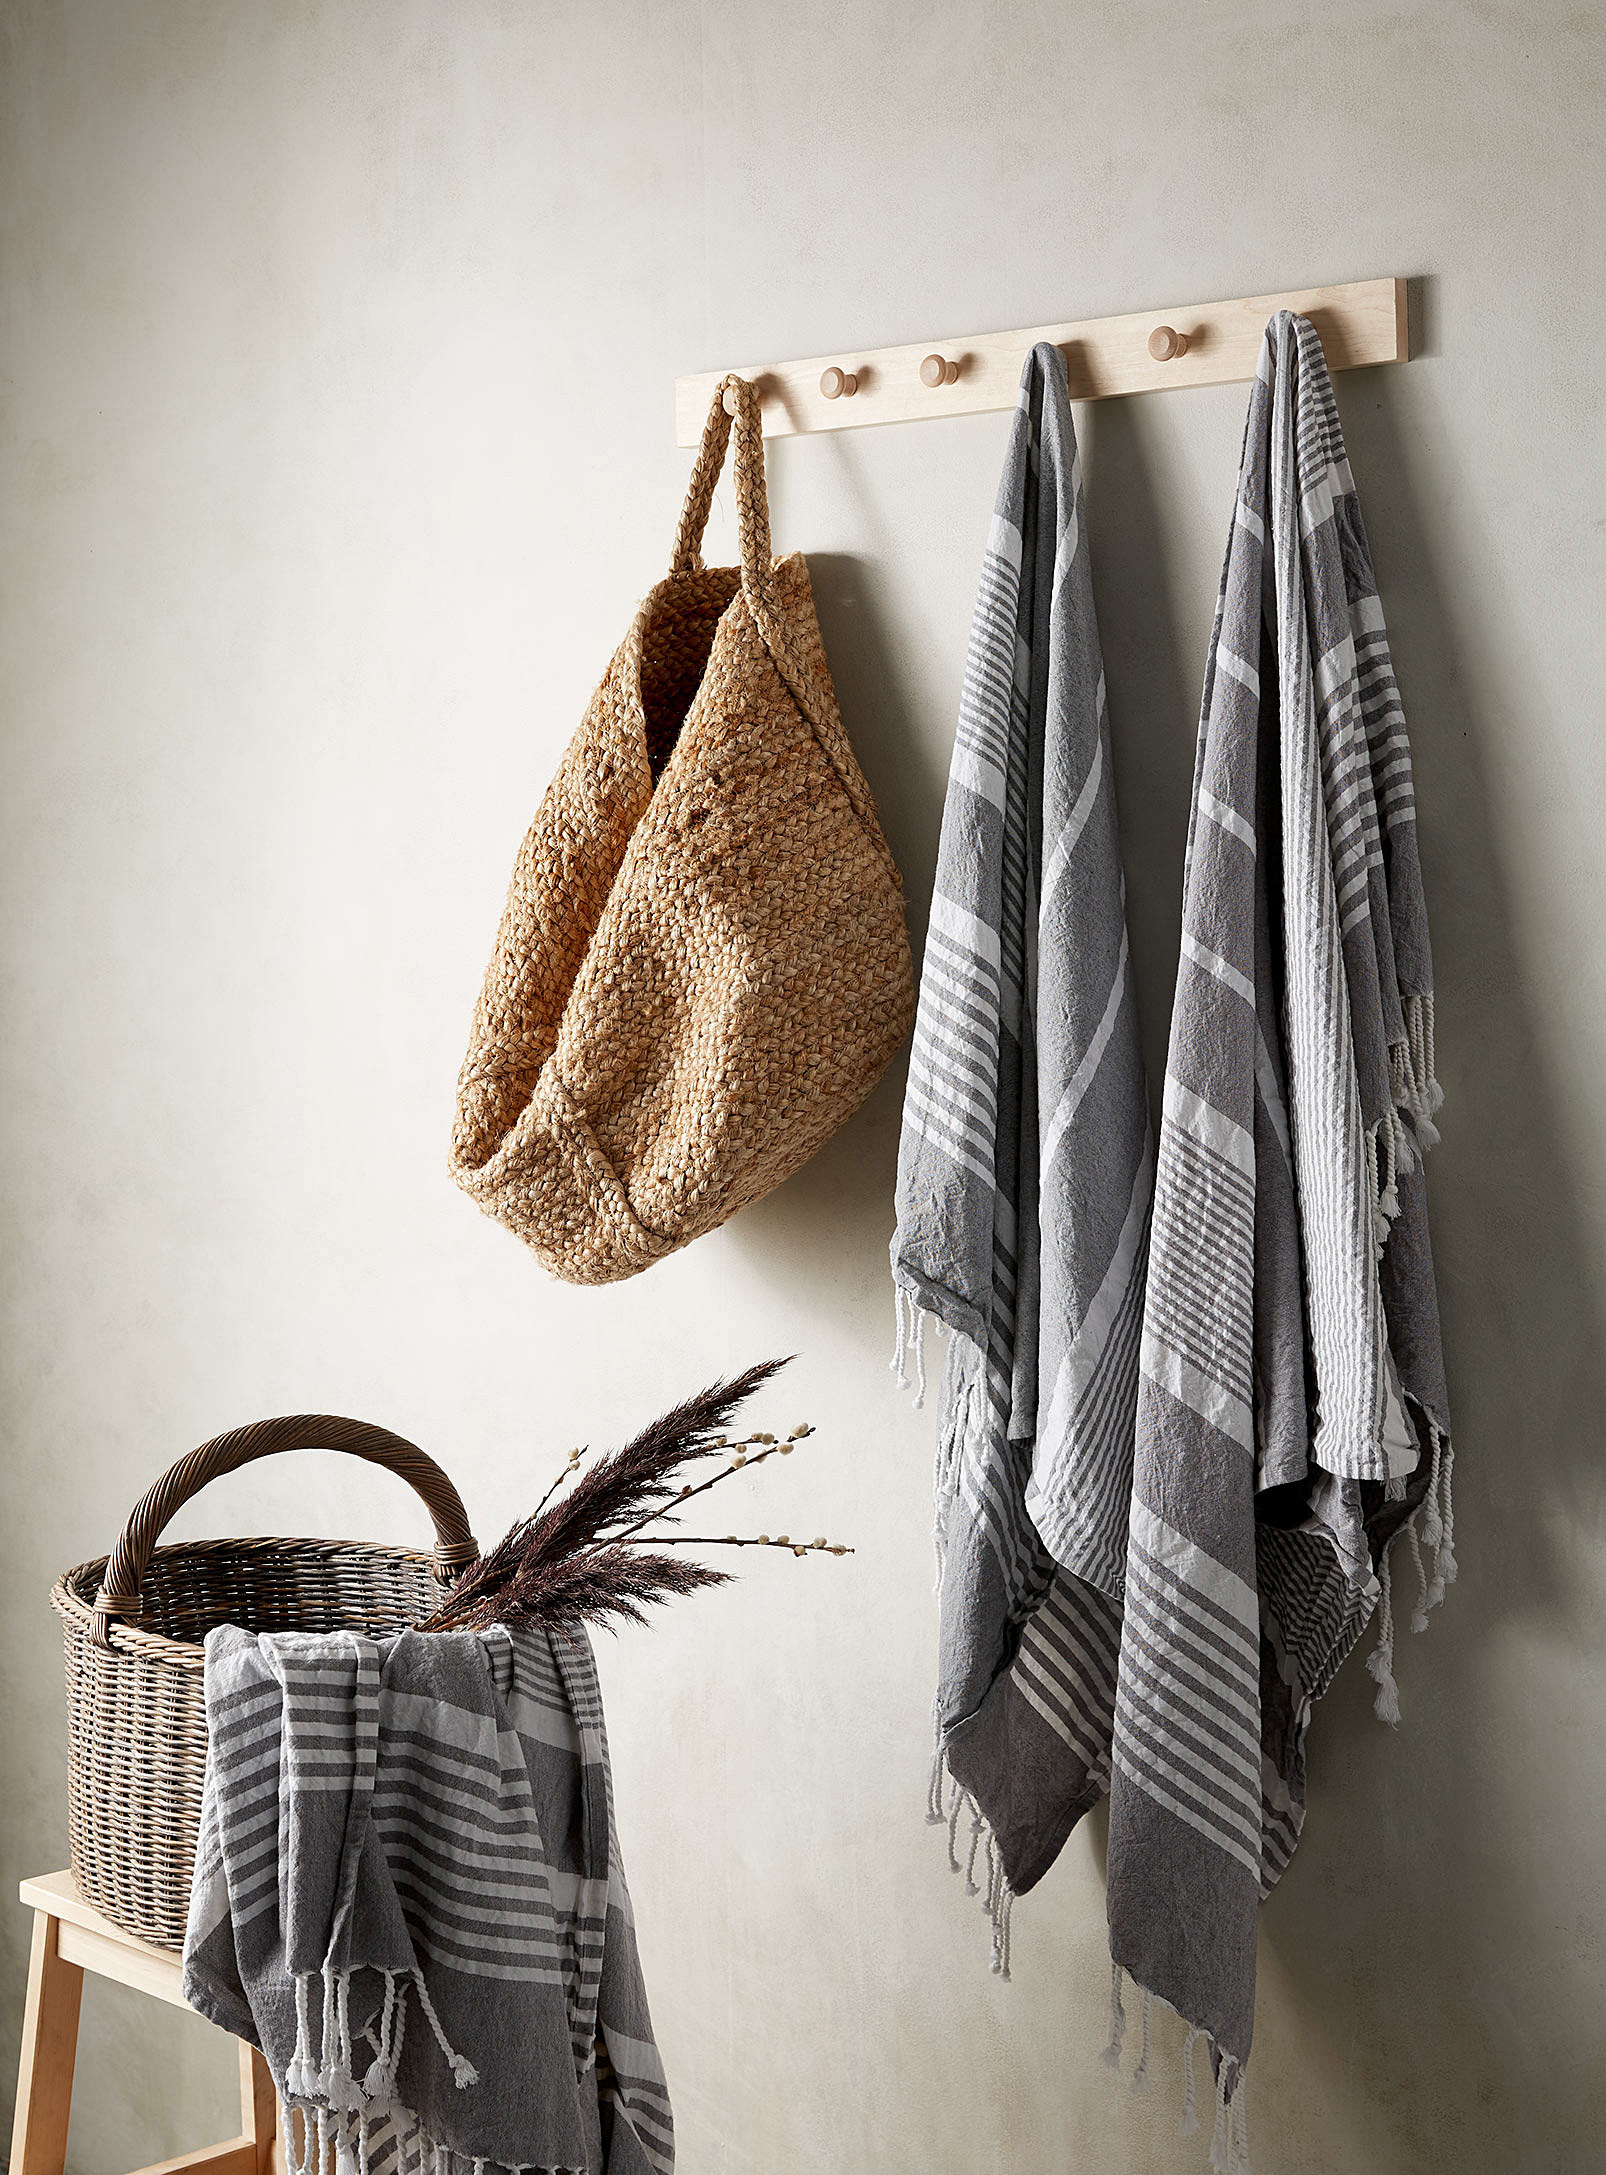 fouta hanging from hooks and from basket